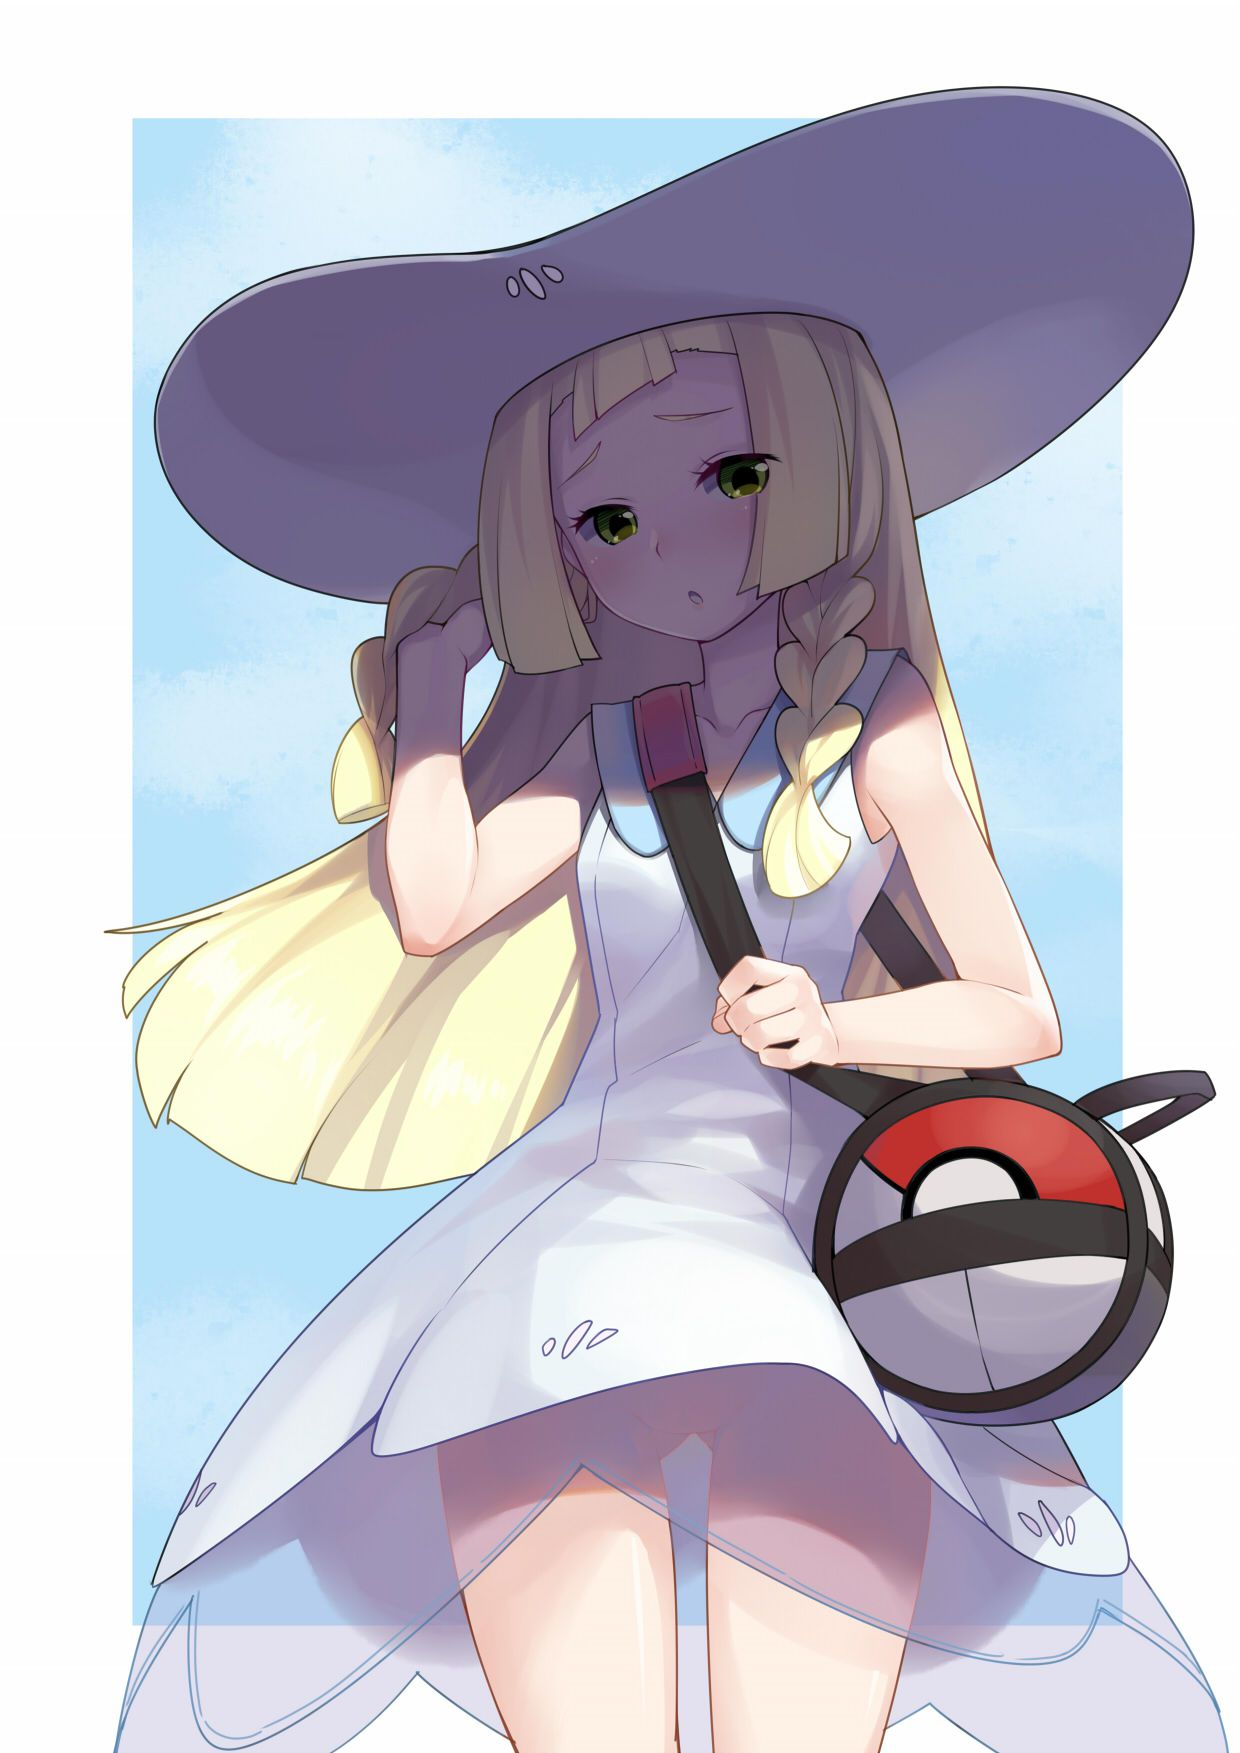 lillie_(pokemon)087